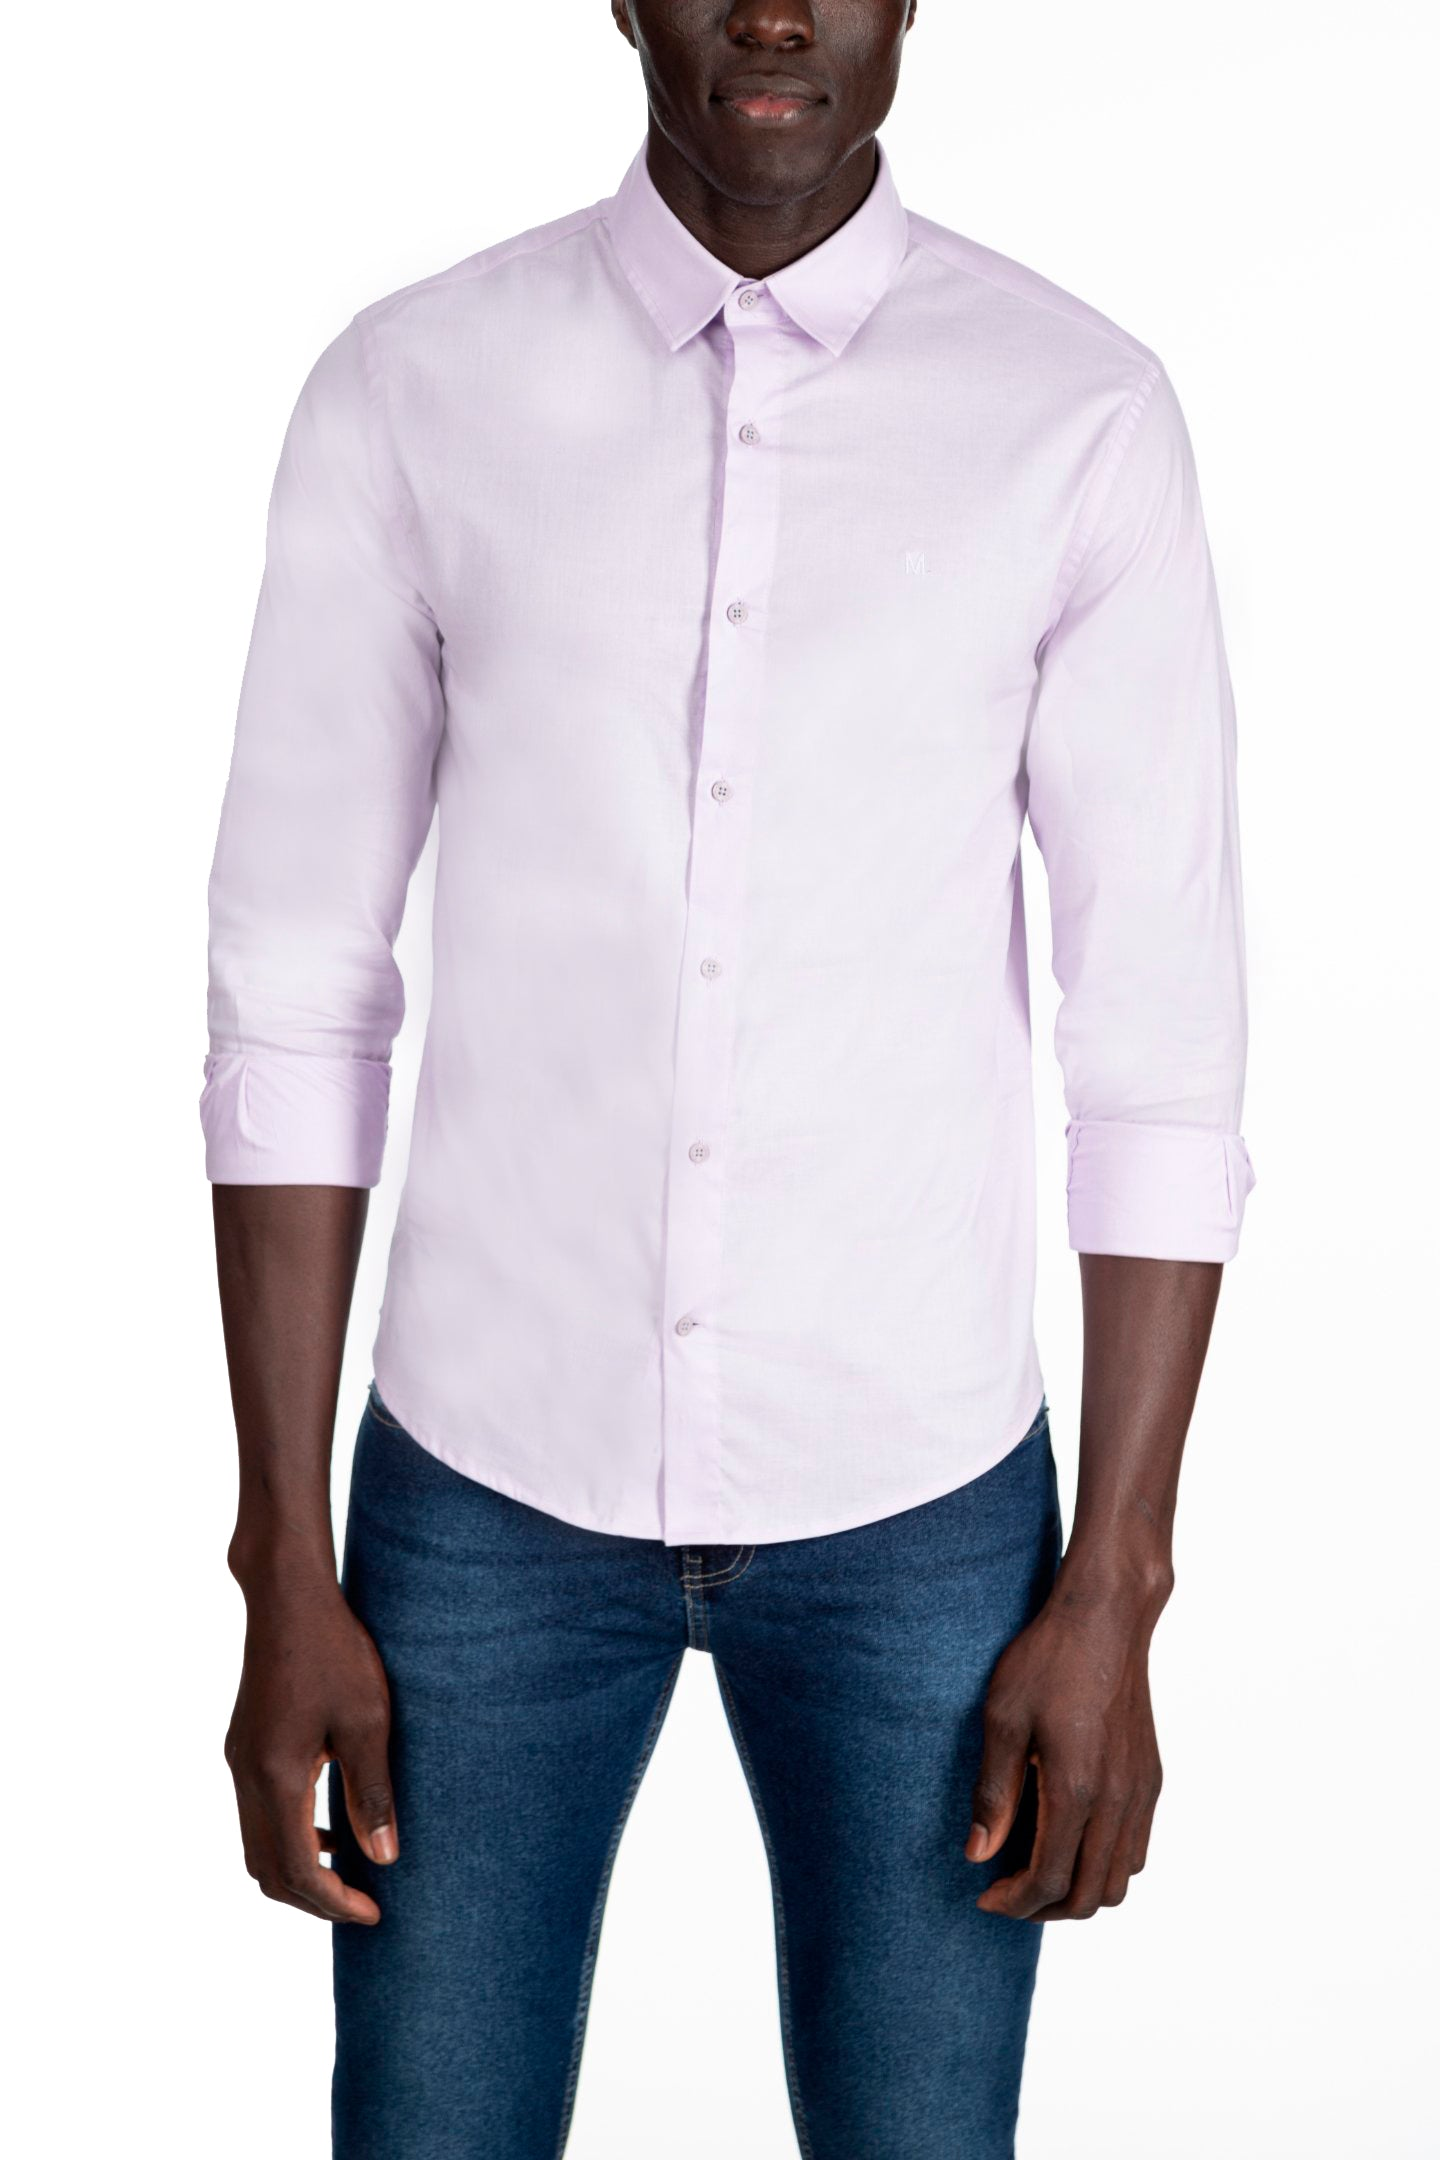 CAMISA SLIM M/L LISA COM ELASTANO OFFICE